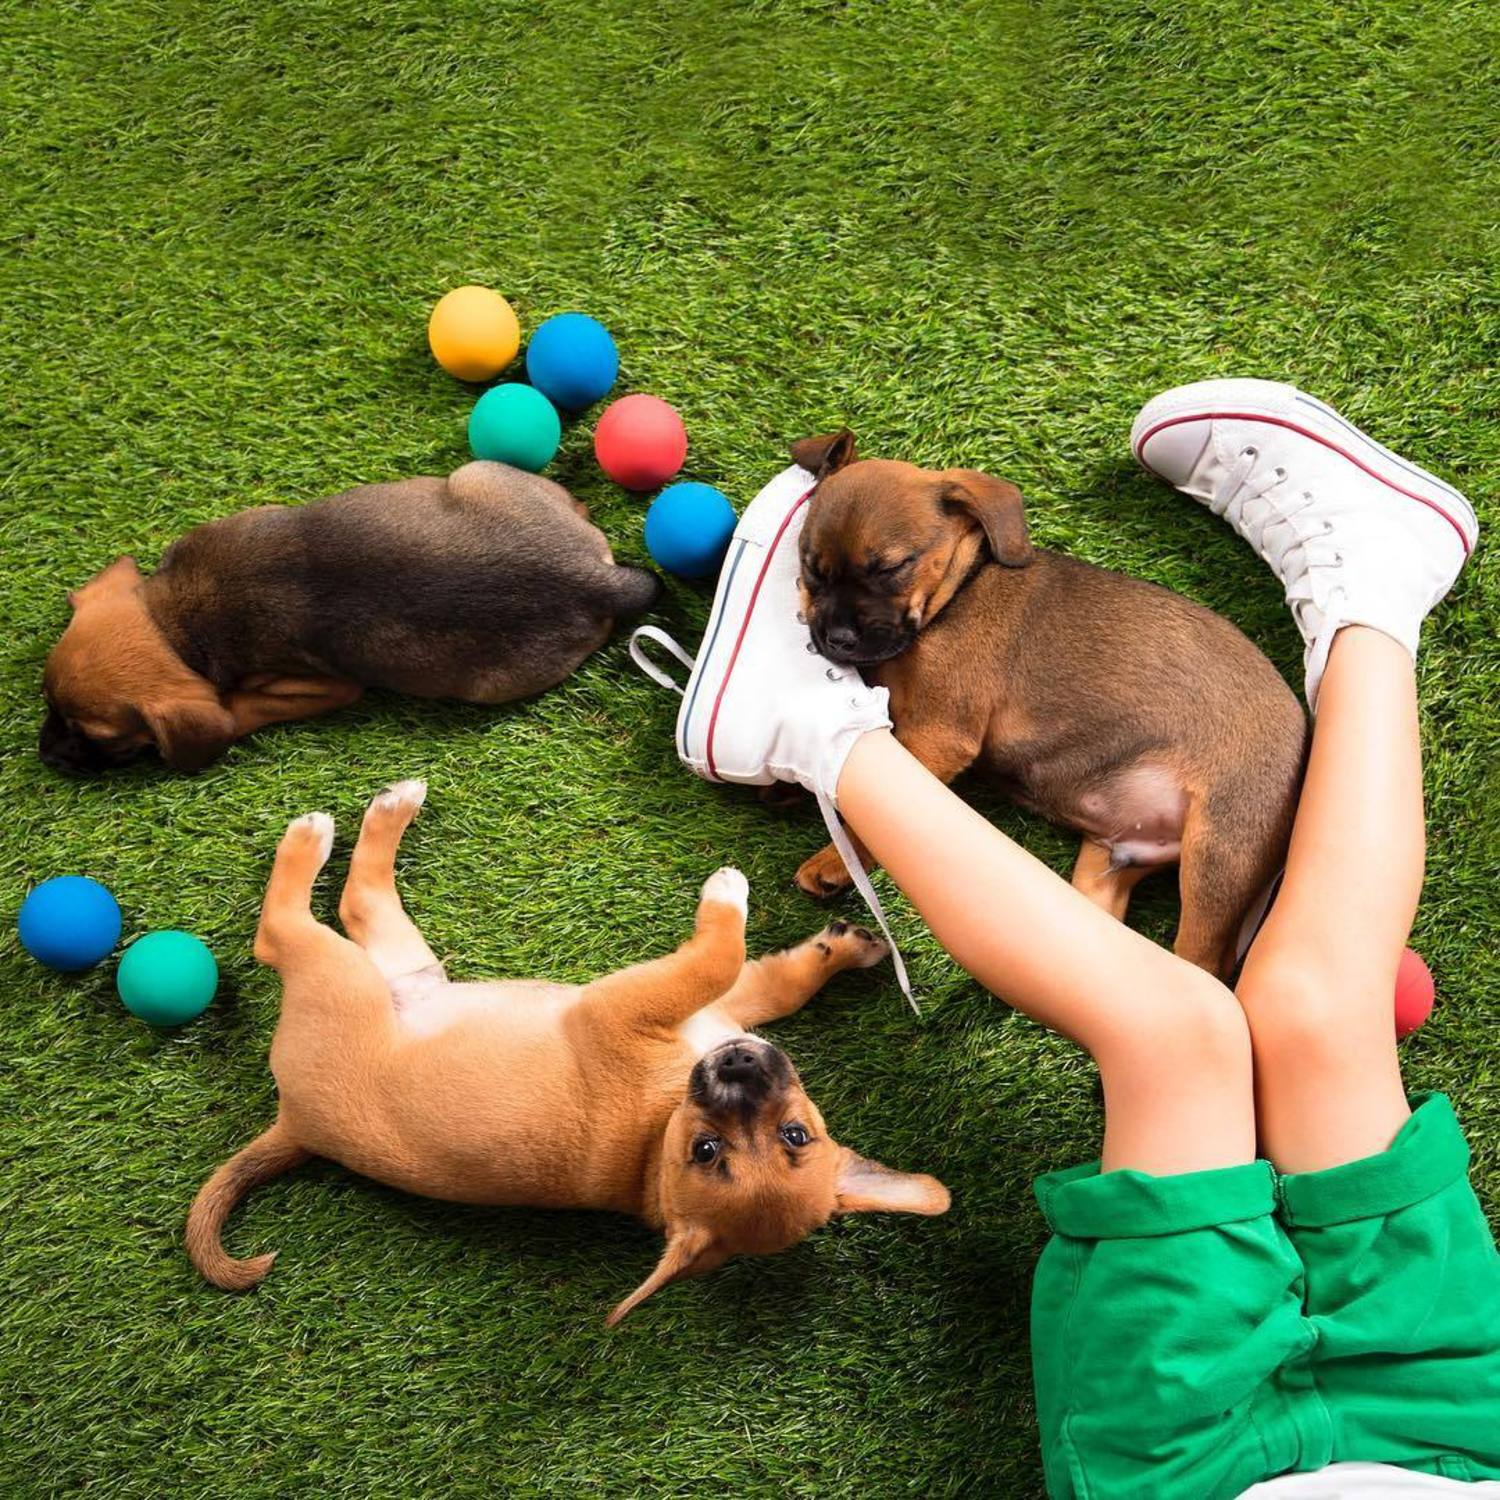 "Our tails are wagging with this sneak peek look at ""The Backyard"", one of the 8 immersive environments to enjoy at @humansbf ✨ Come play in the grass with me and some pups! 📸: Beagle Puppies from @rescuecity #humansbf"